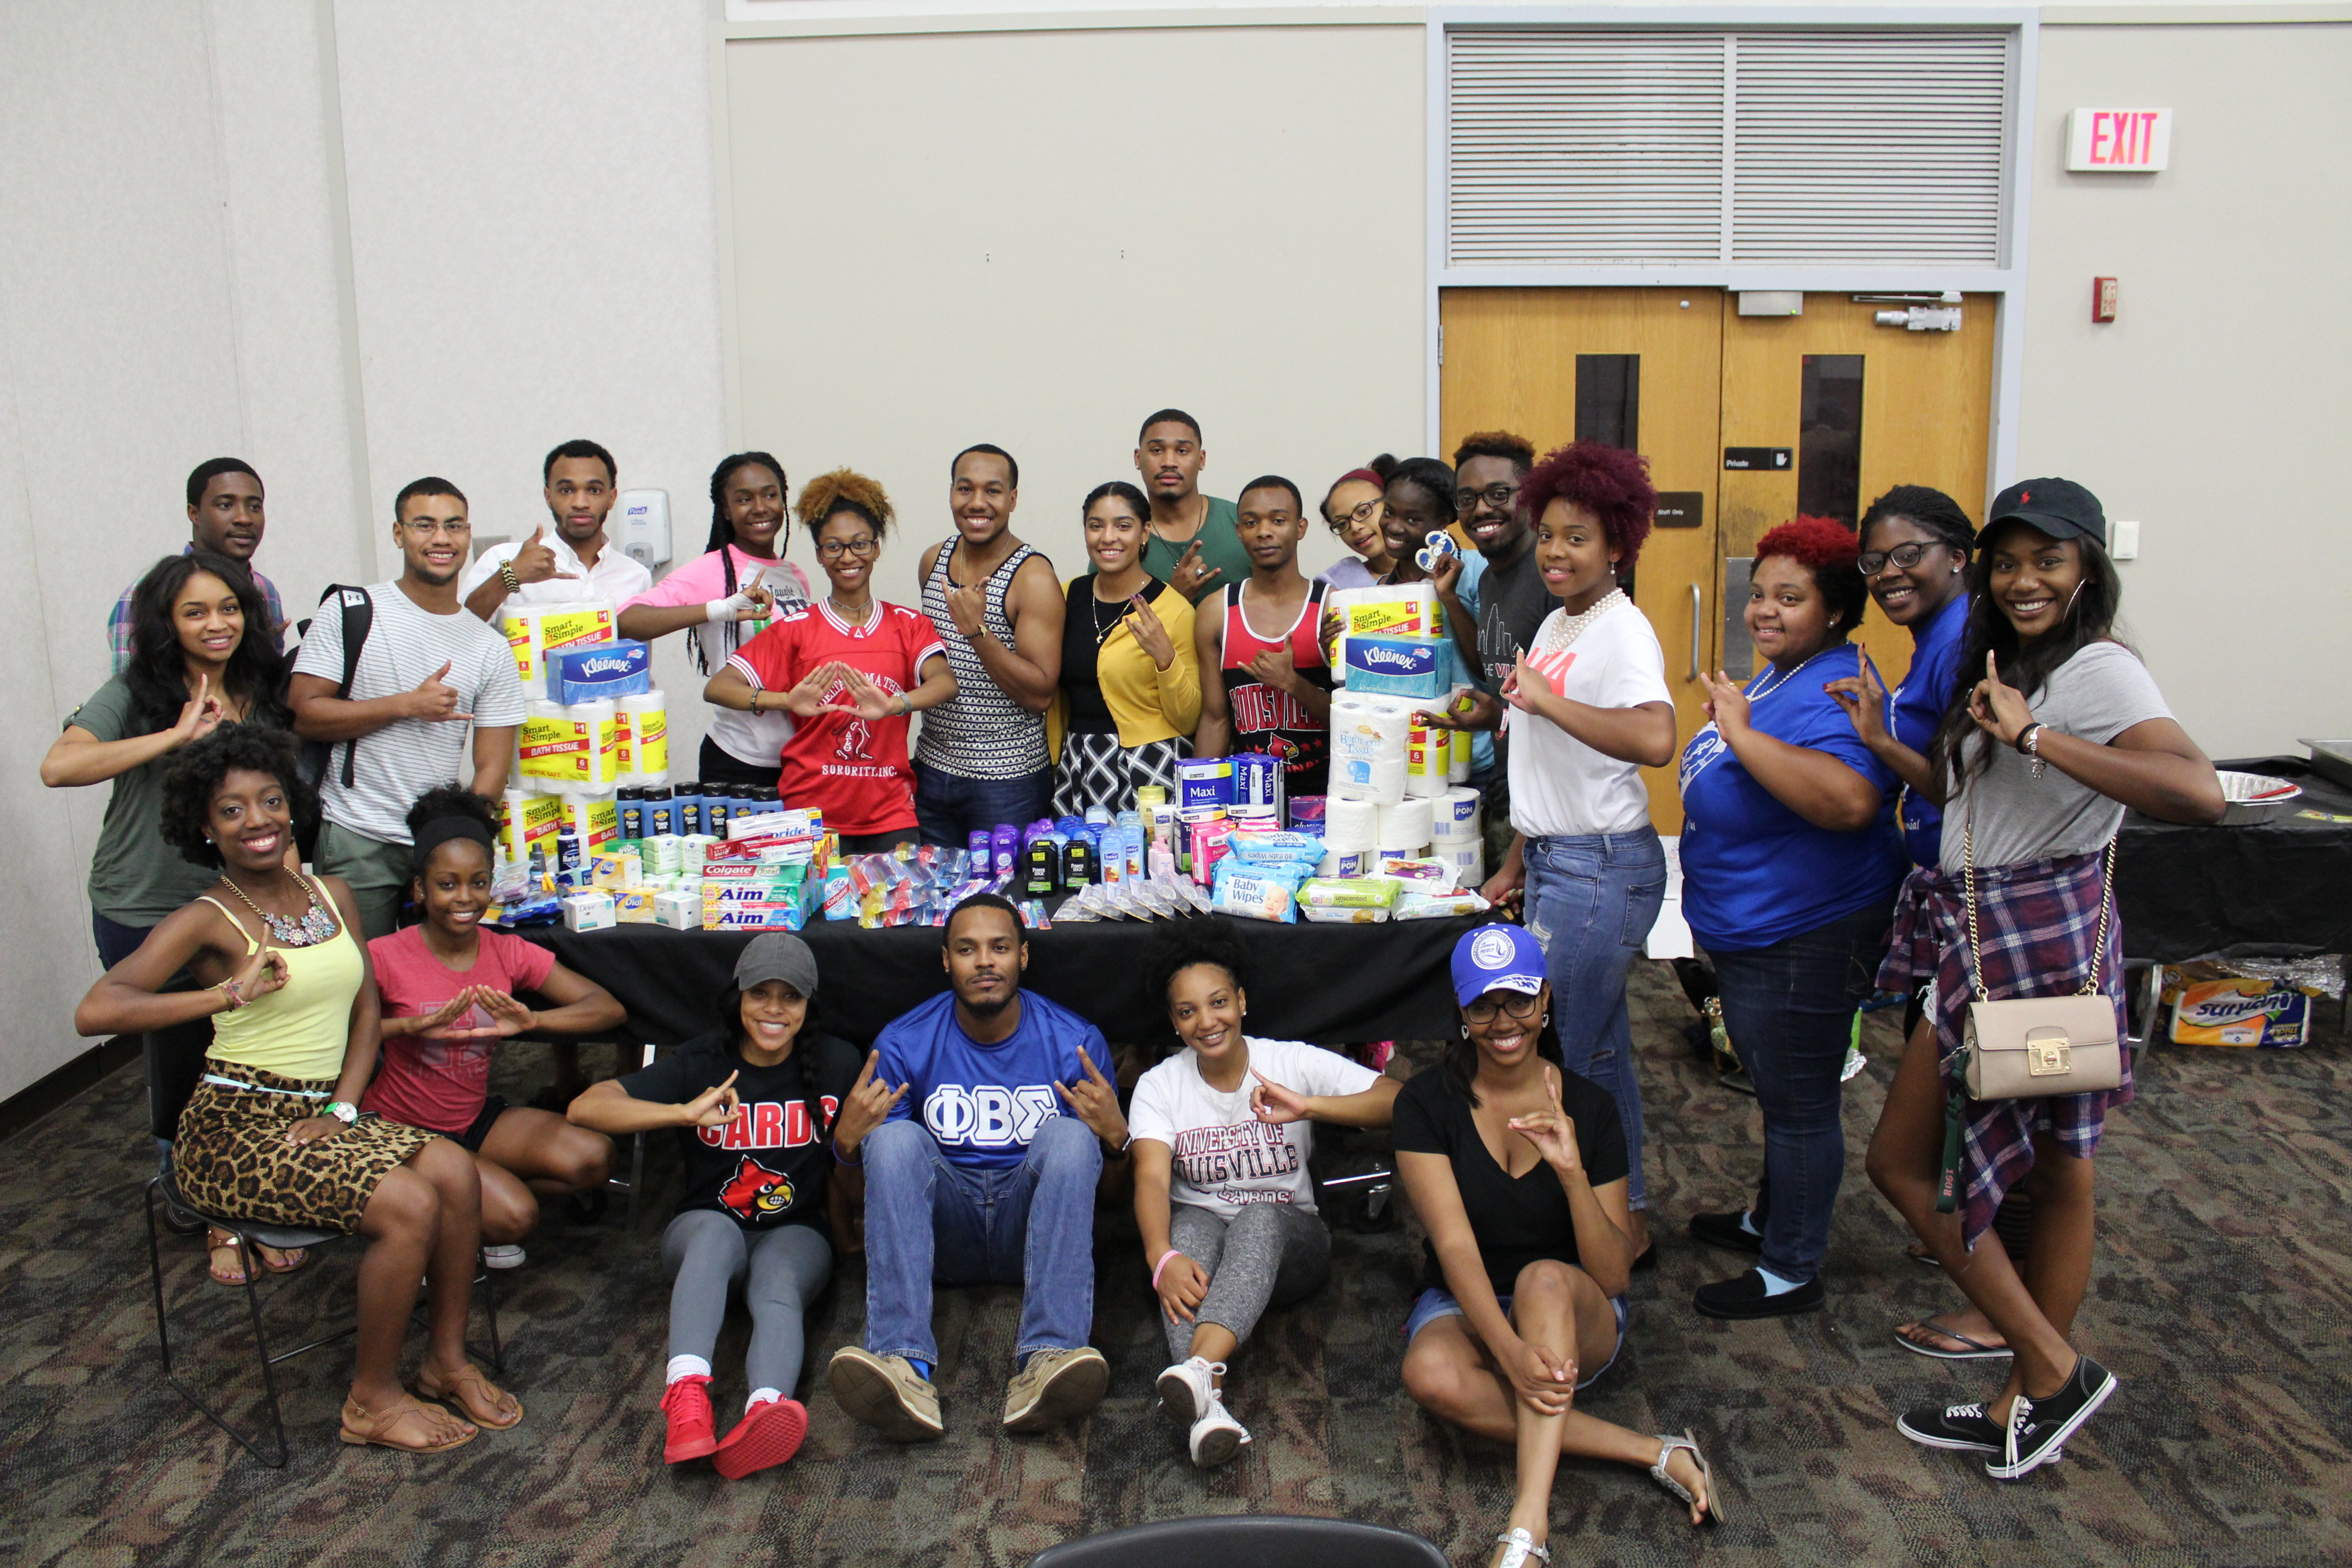 NPHC students gathered around a table